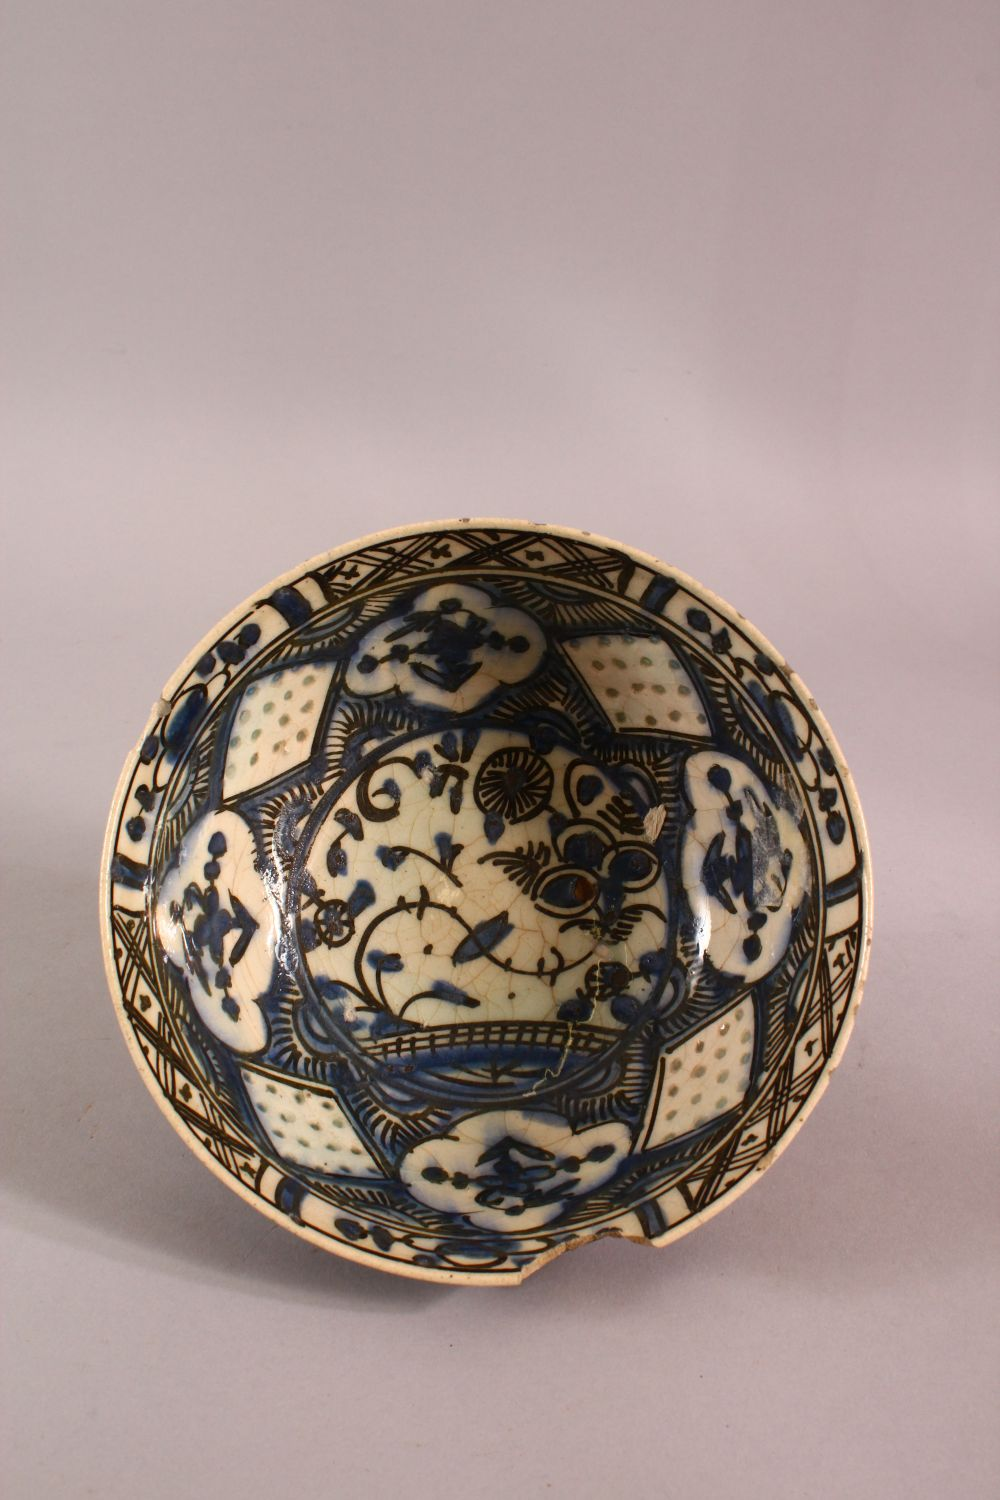 A 19TH CENTURY OR EARLIER TURKISH POTTERY BOWL, with floral motif decorations, (af) 18.5cm - Image 5 of 6